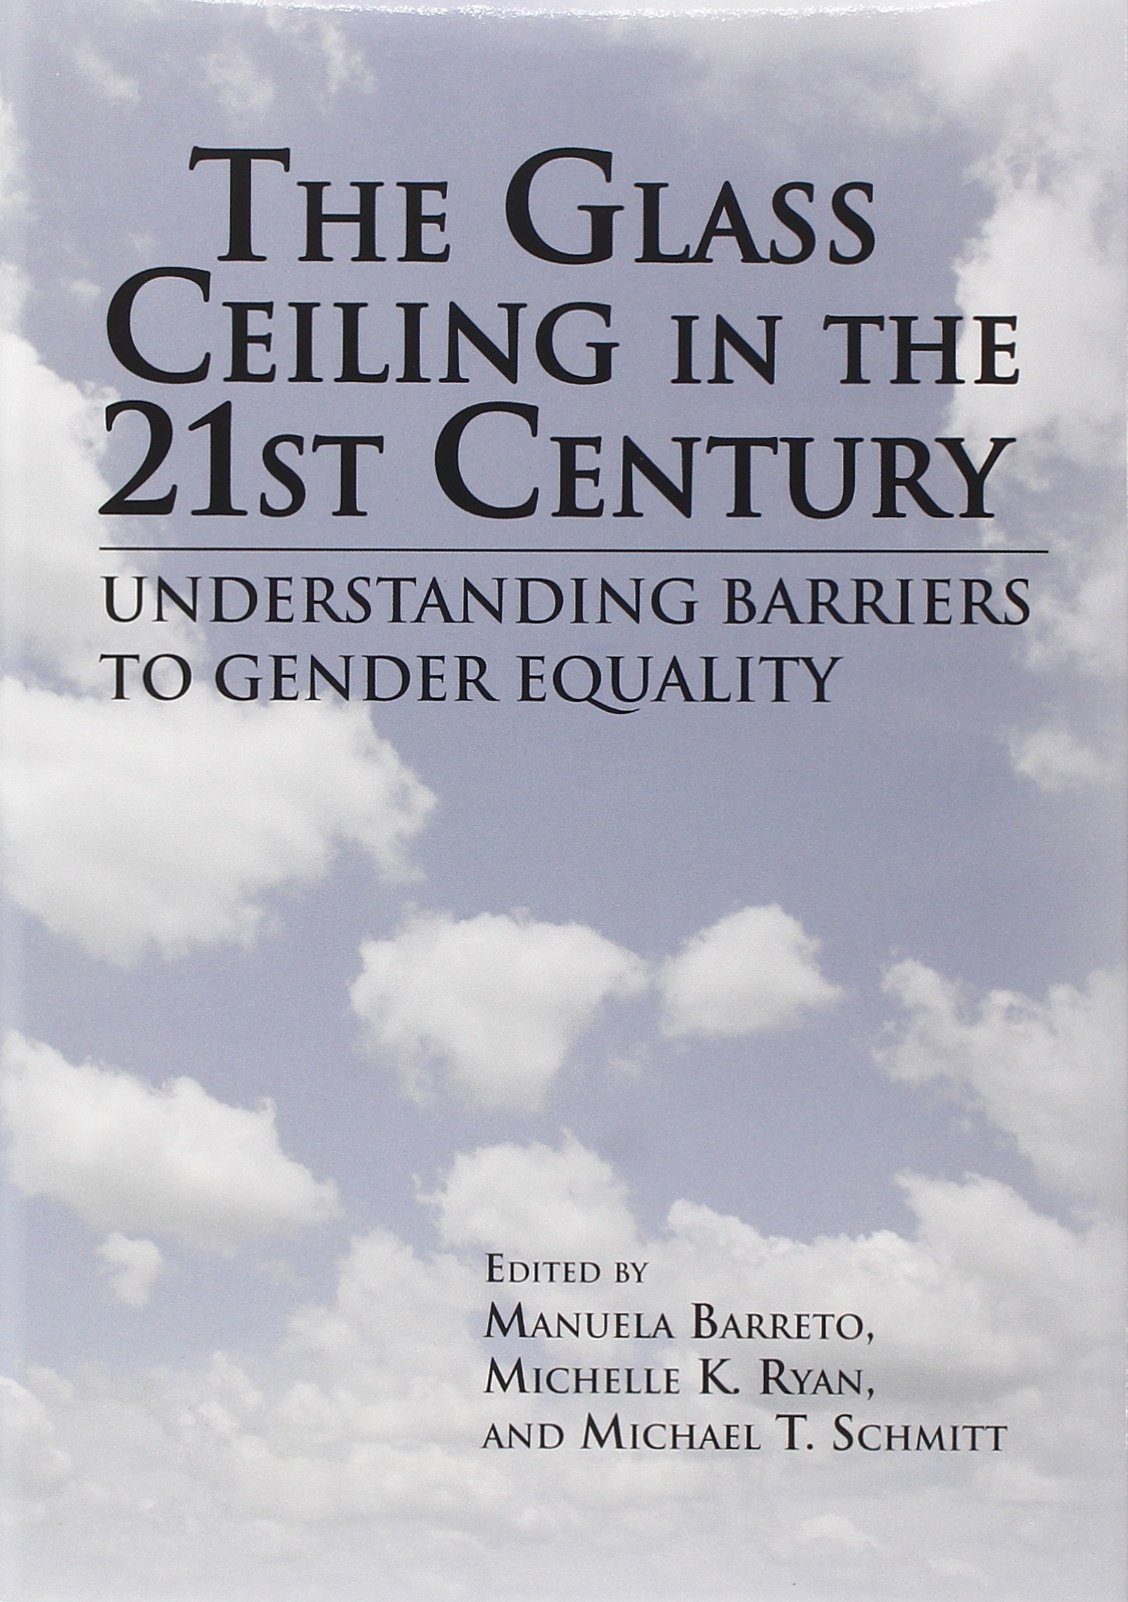 Download The Glass Ceiling in the 21st Century: Understanding Barriers to Gender Equality (Psychology of Women) pdf epub